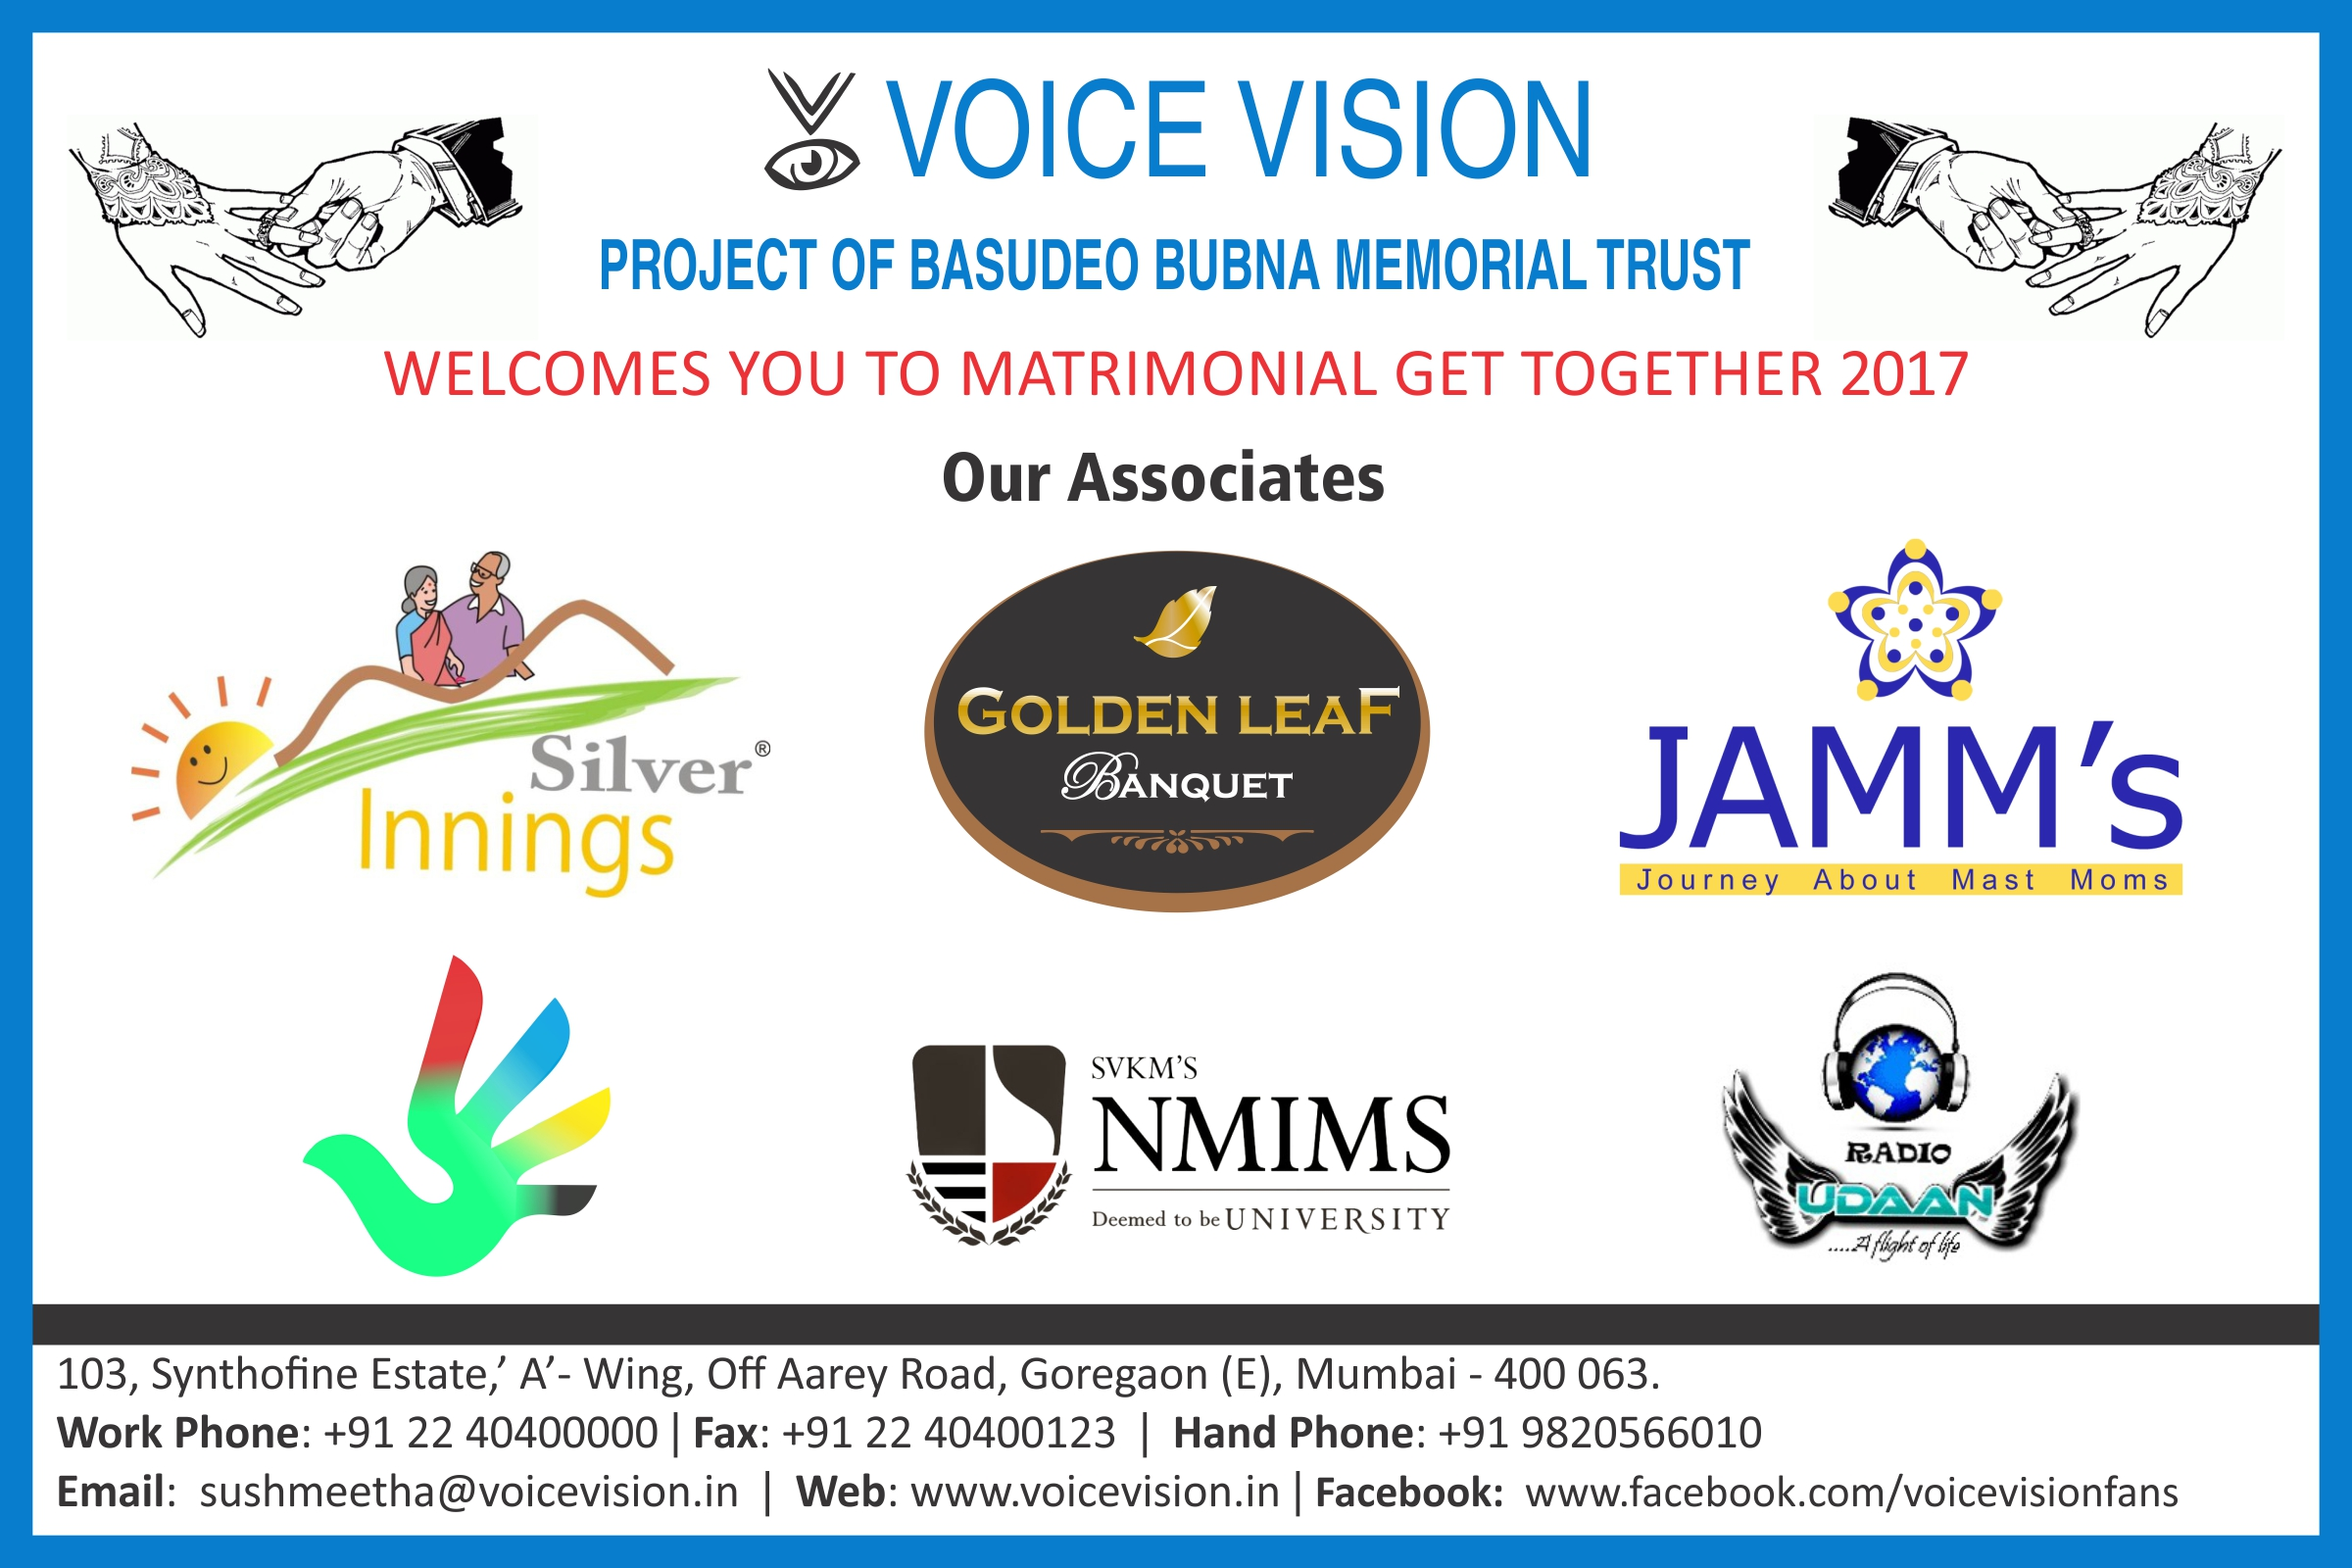 Matrimonial get-together 2017 banner with logos of sponsors such as NMIMS, golden leaf banquets, JAMM'S etc.